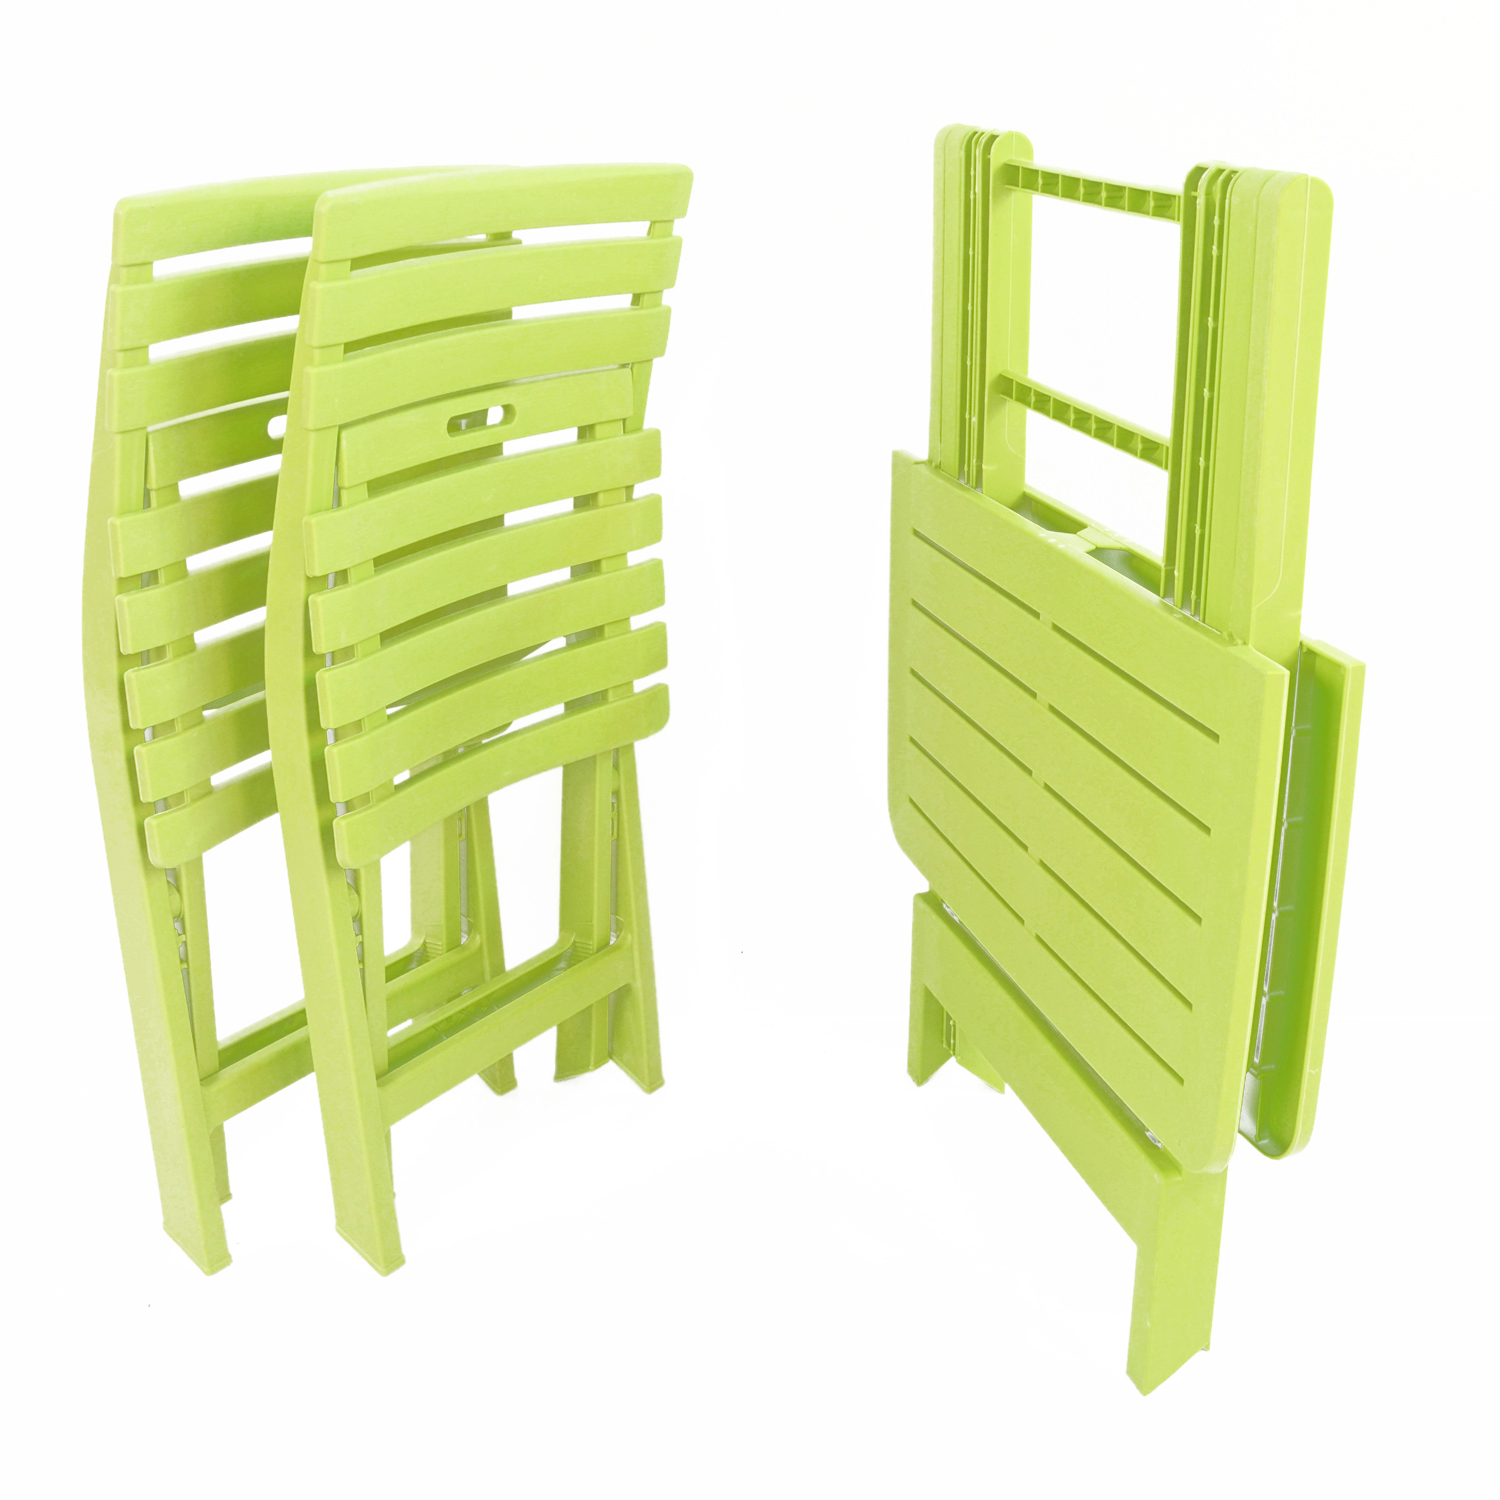 BRESCIA FOLDING TABLE WITH 2 BRESCIA CHAIRS SET LIME FOLDED